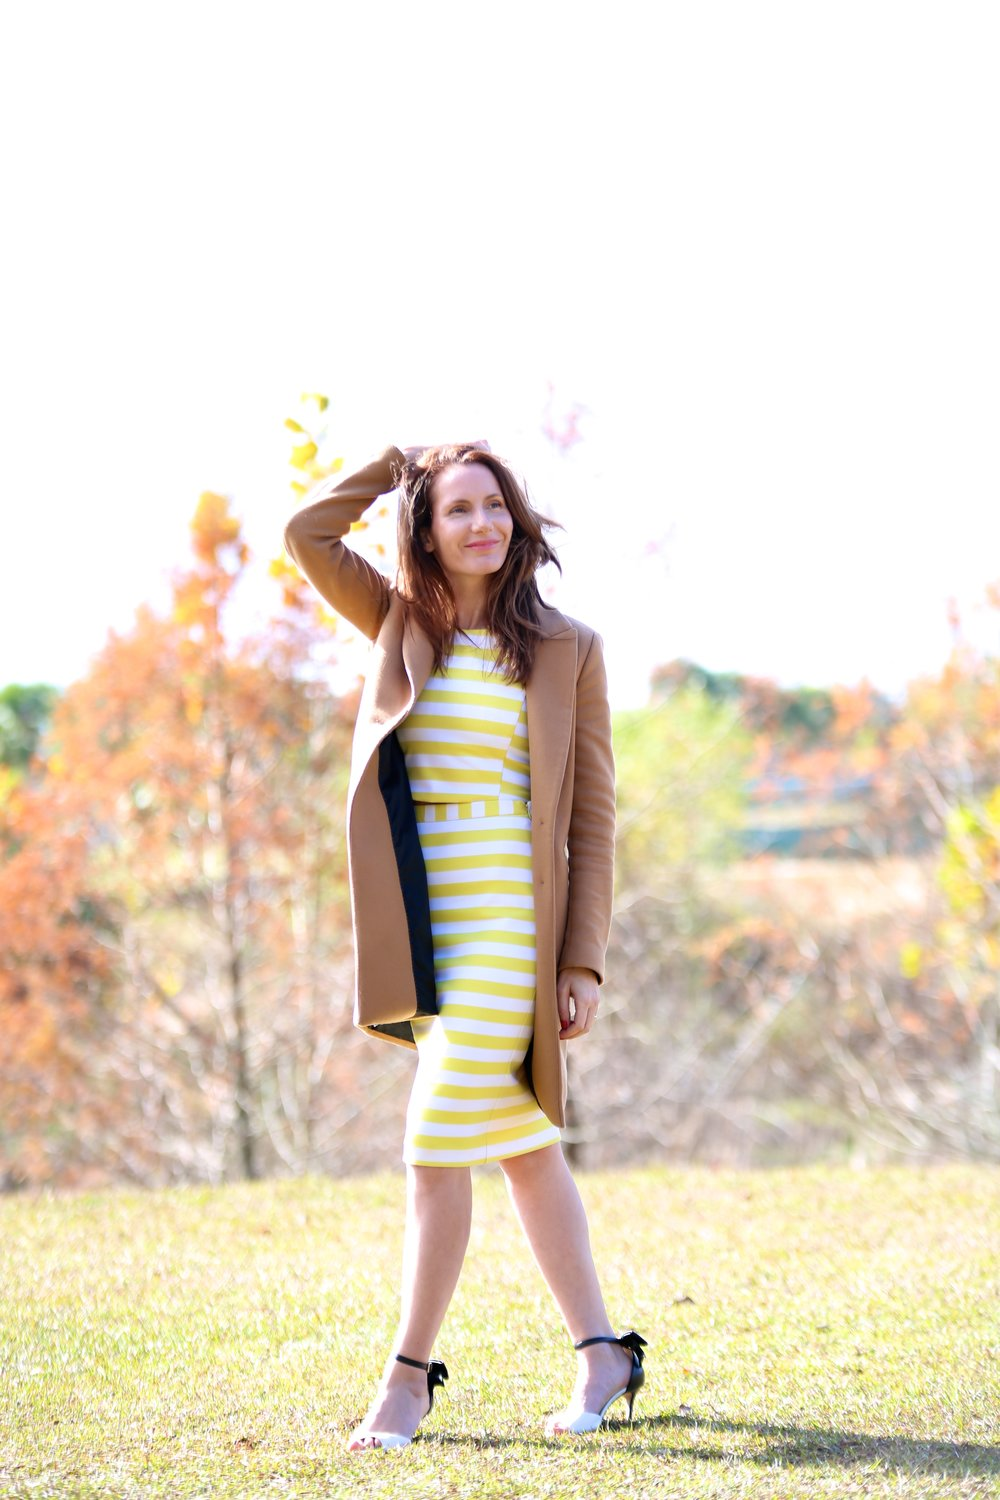 Wearing Patrizia Pepe Top and Skirt // Kate Spade shoes // Zara Coat  here  Photography by Drew in Tallahassee: https://www.instagram.com/drehowphotography/